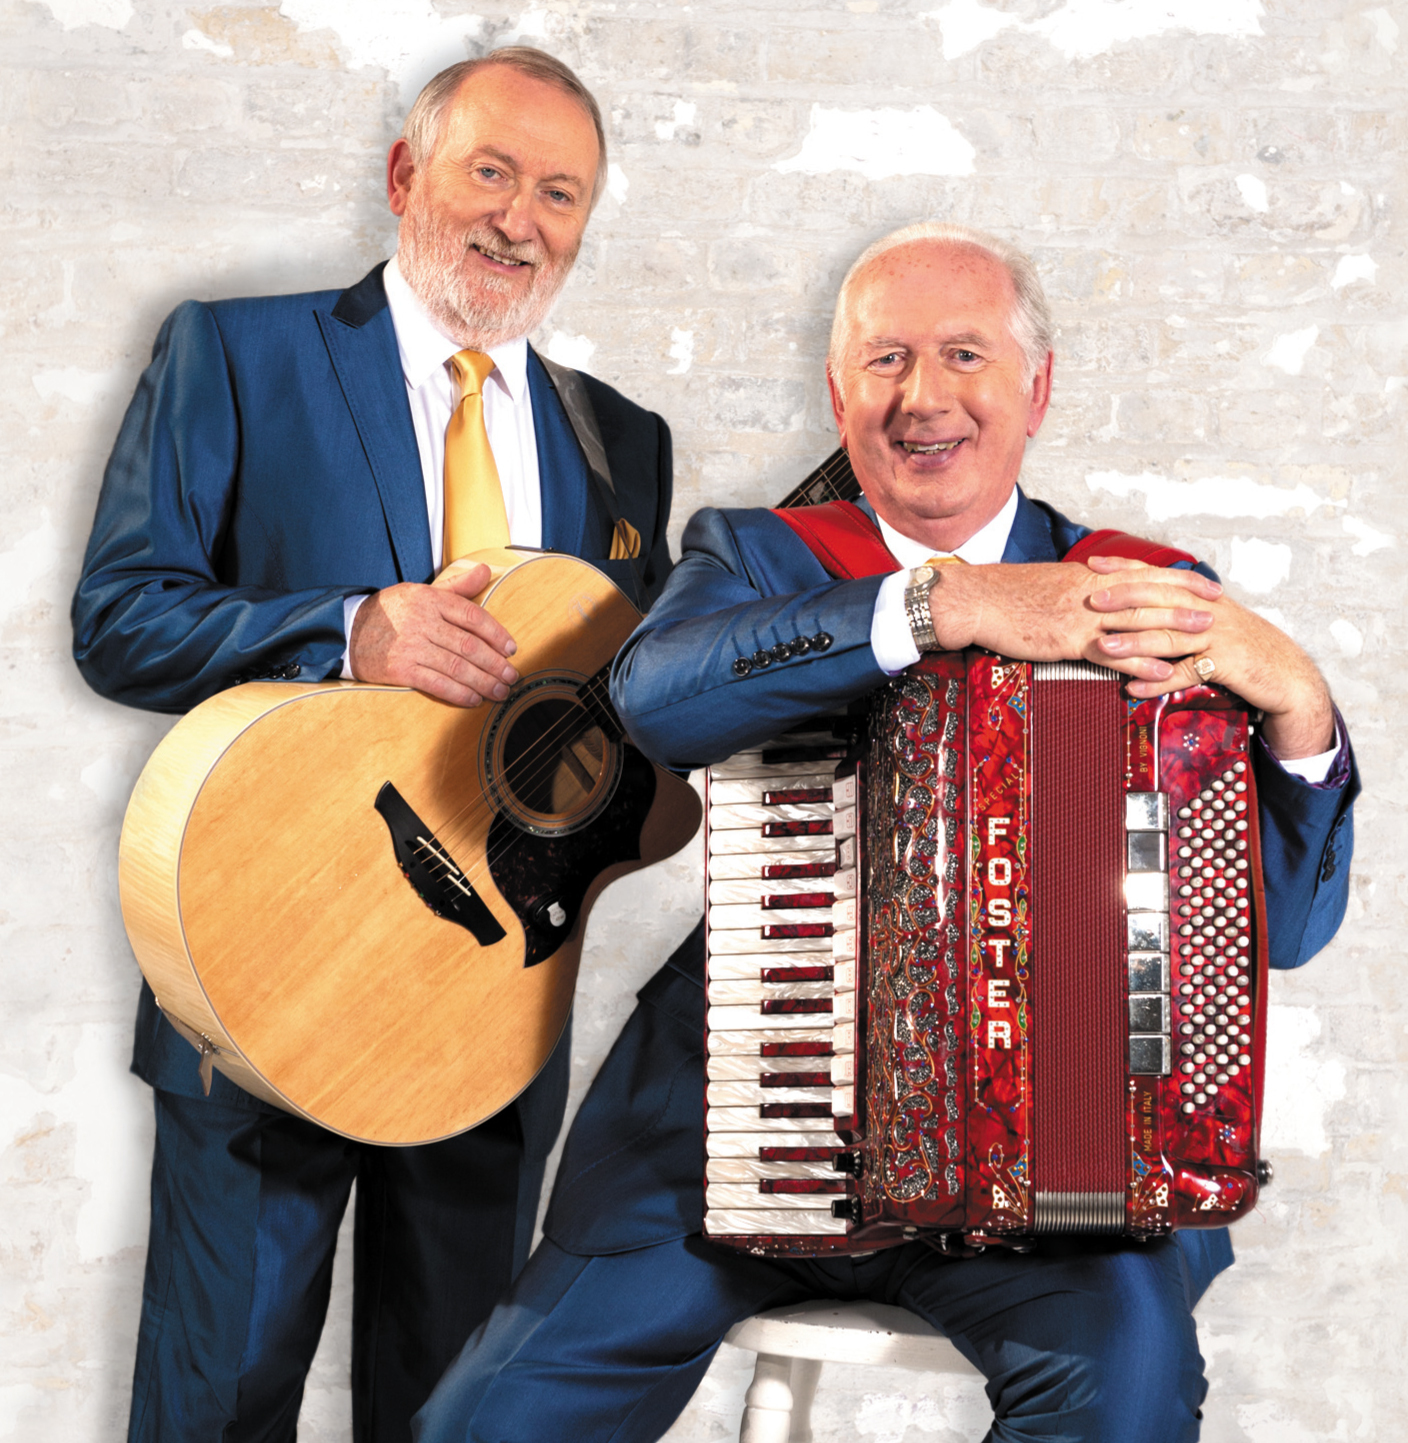 ON TOUR: Foster and Allen are at the West Cliff Theatre on Bonfire Night